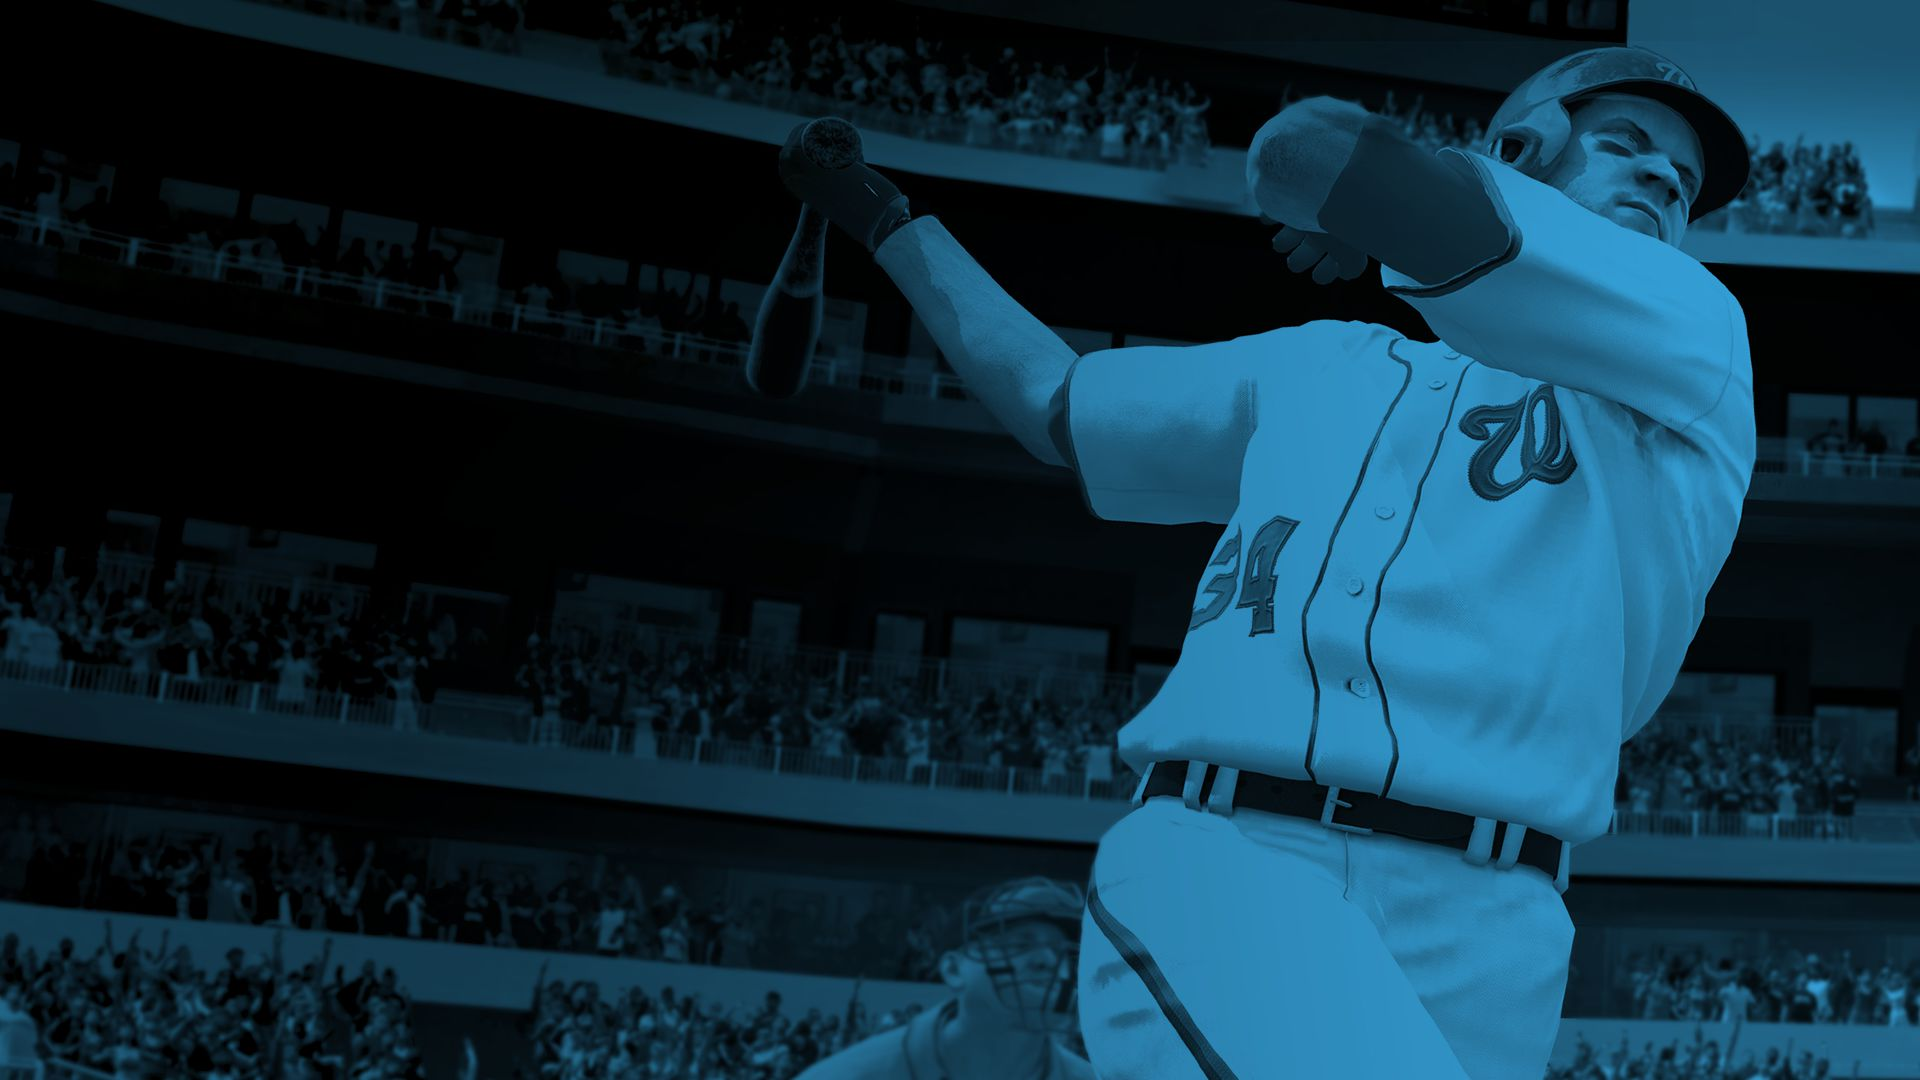 Sony PlayStation | MLB: The Show Gaming Case Study